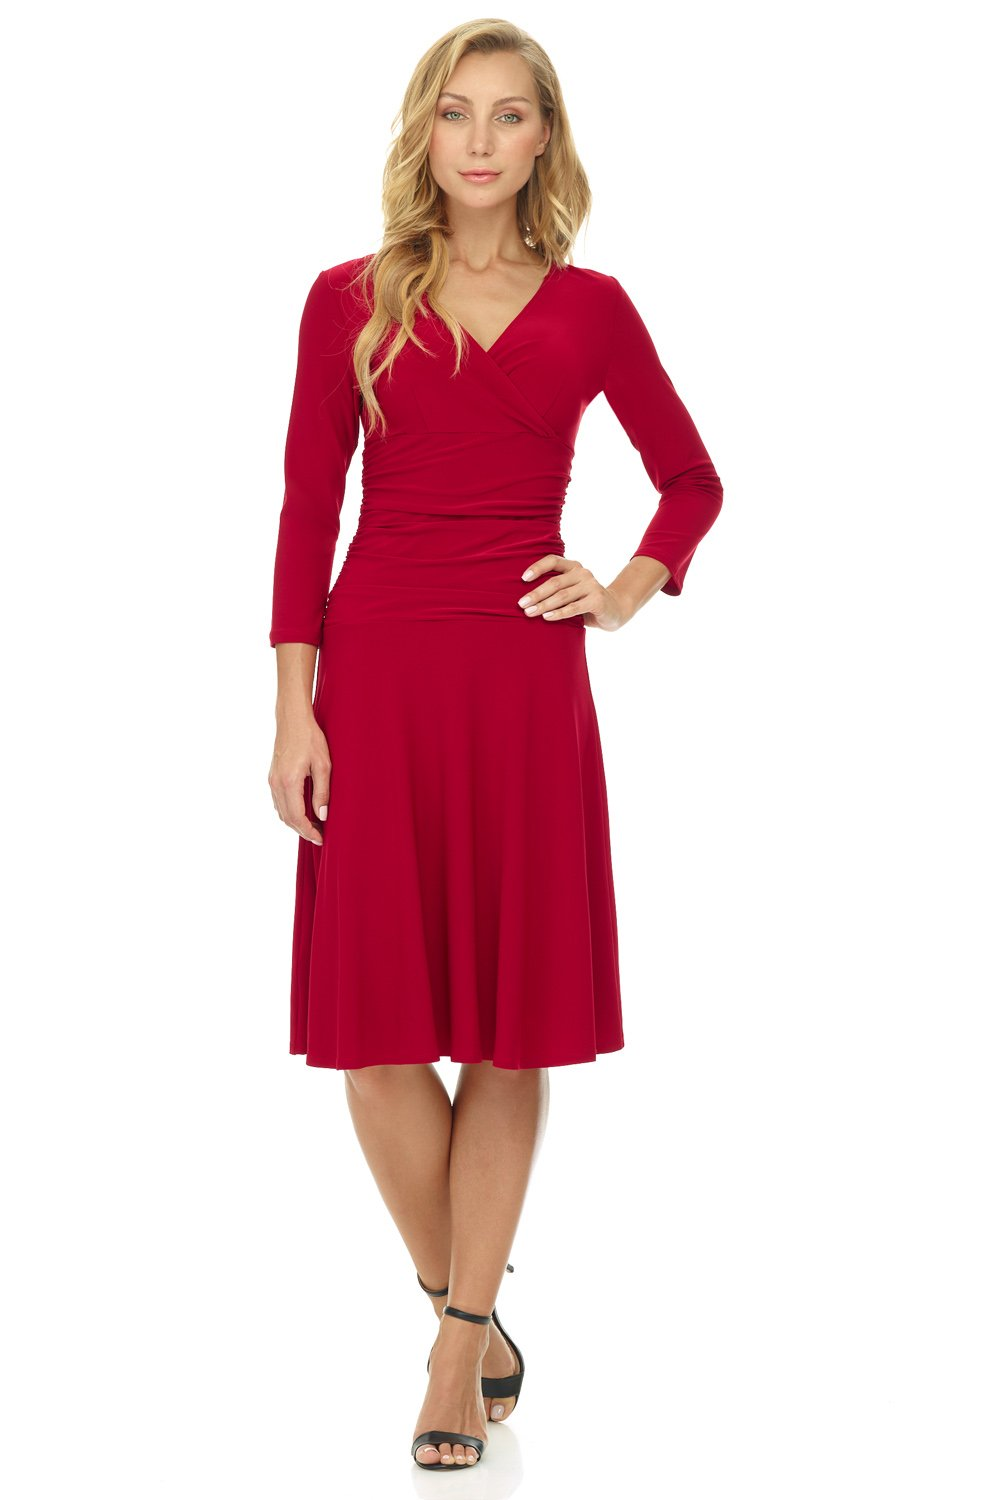 Red Dress - Women's Vintage Floral Lace Long Sleeve Boat Neck Cocktail Party Swing Dress